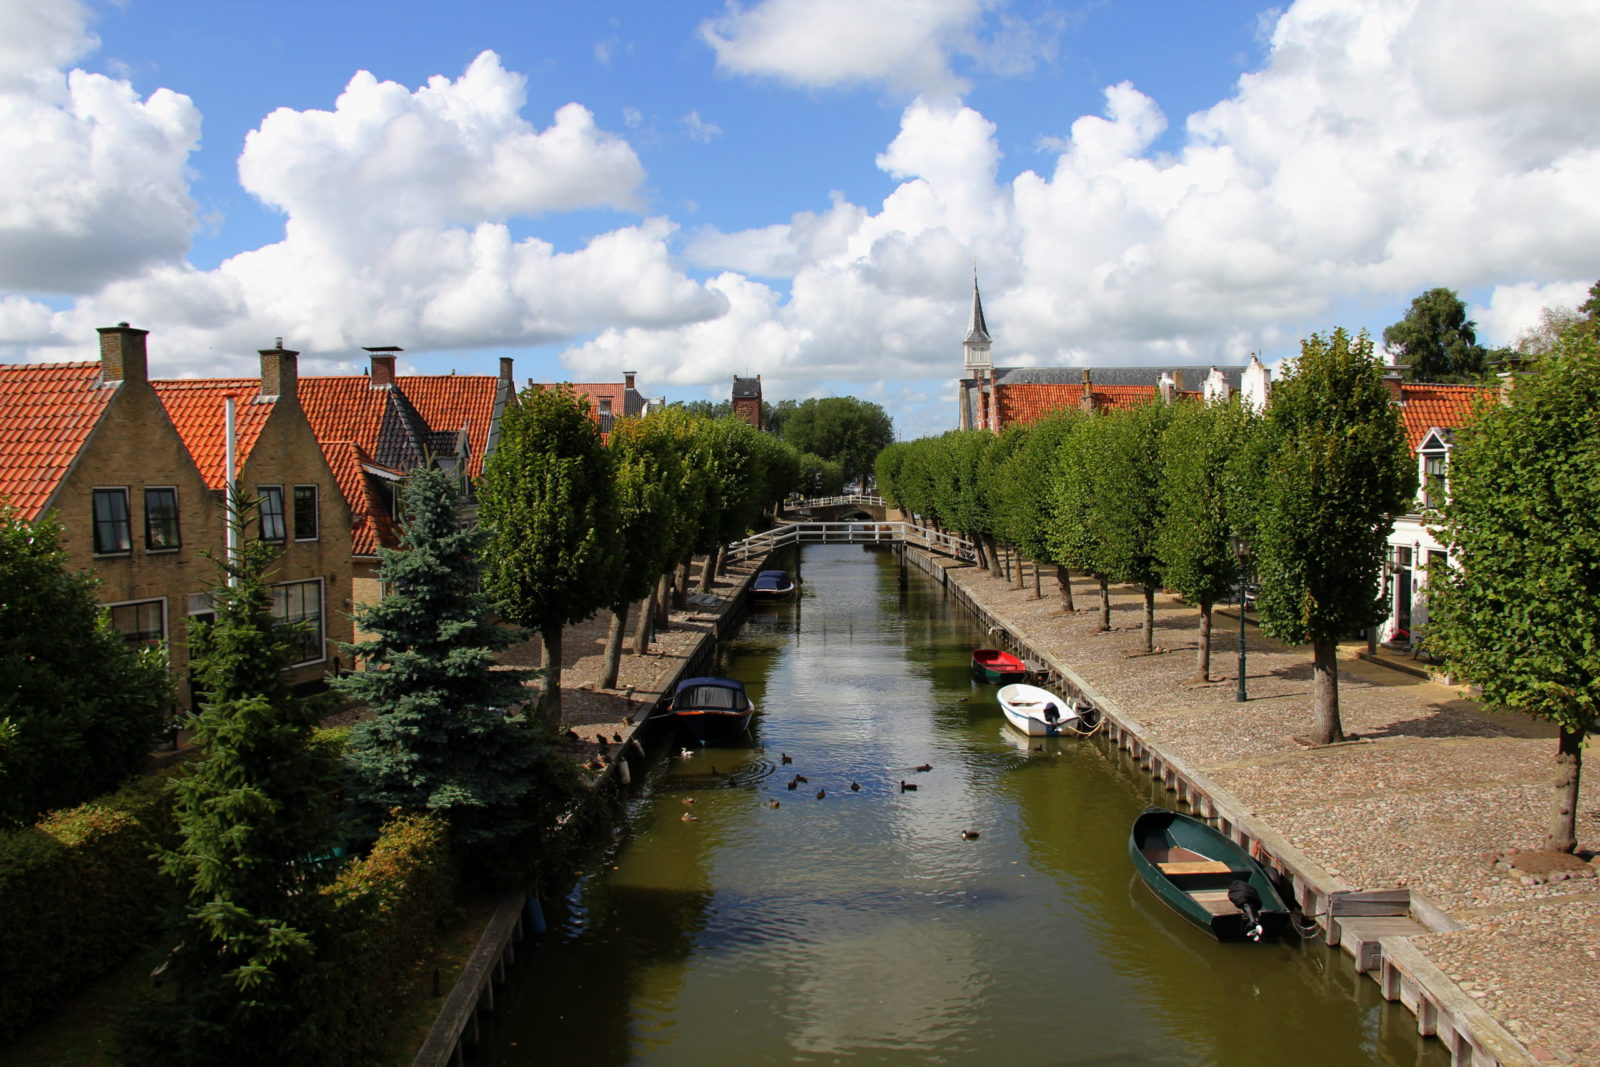 Canal in Holland with boats